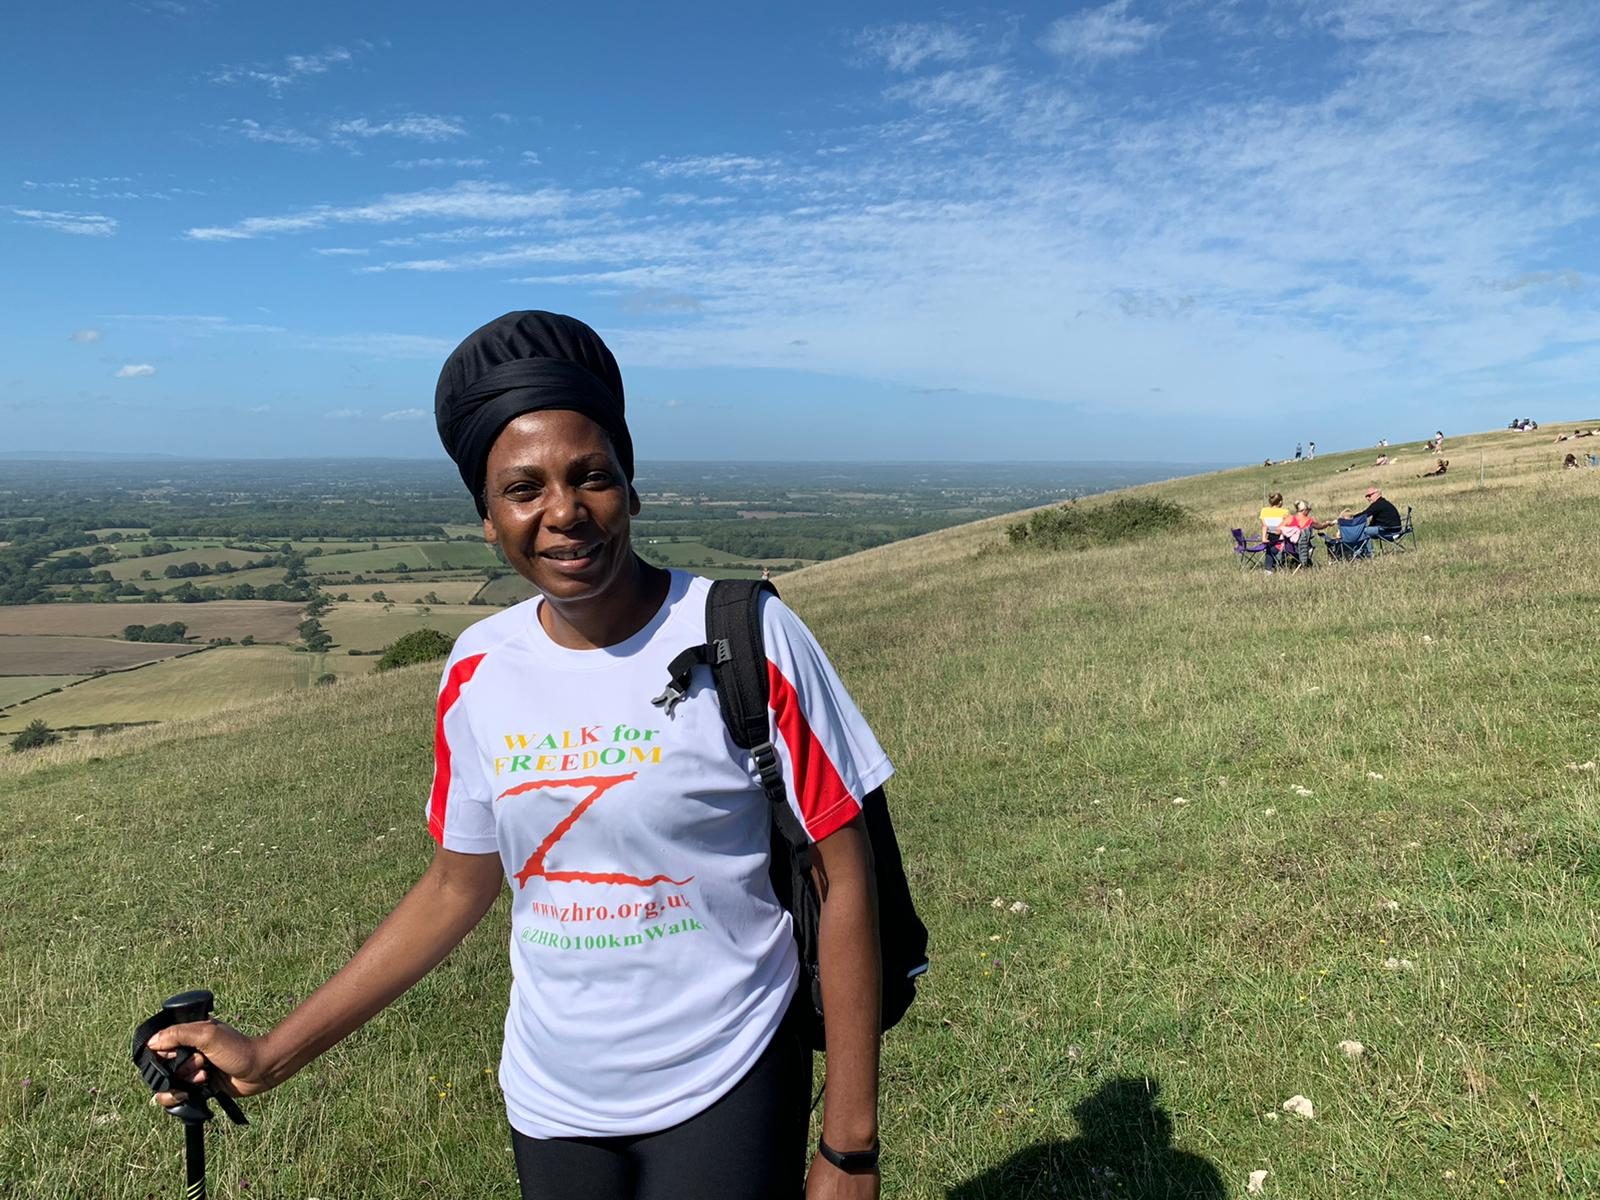 Rashiwe-Devil's Dyke 20th Aug 2020